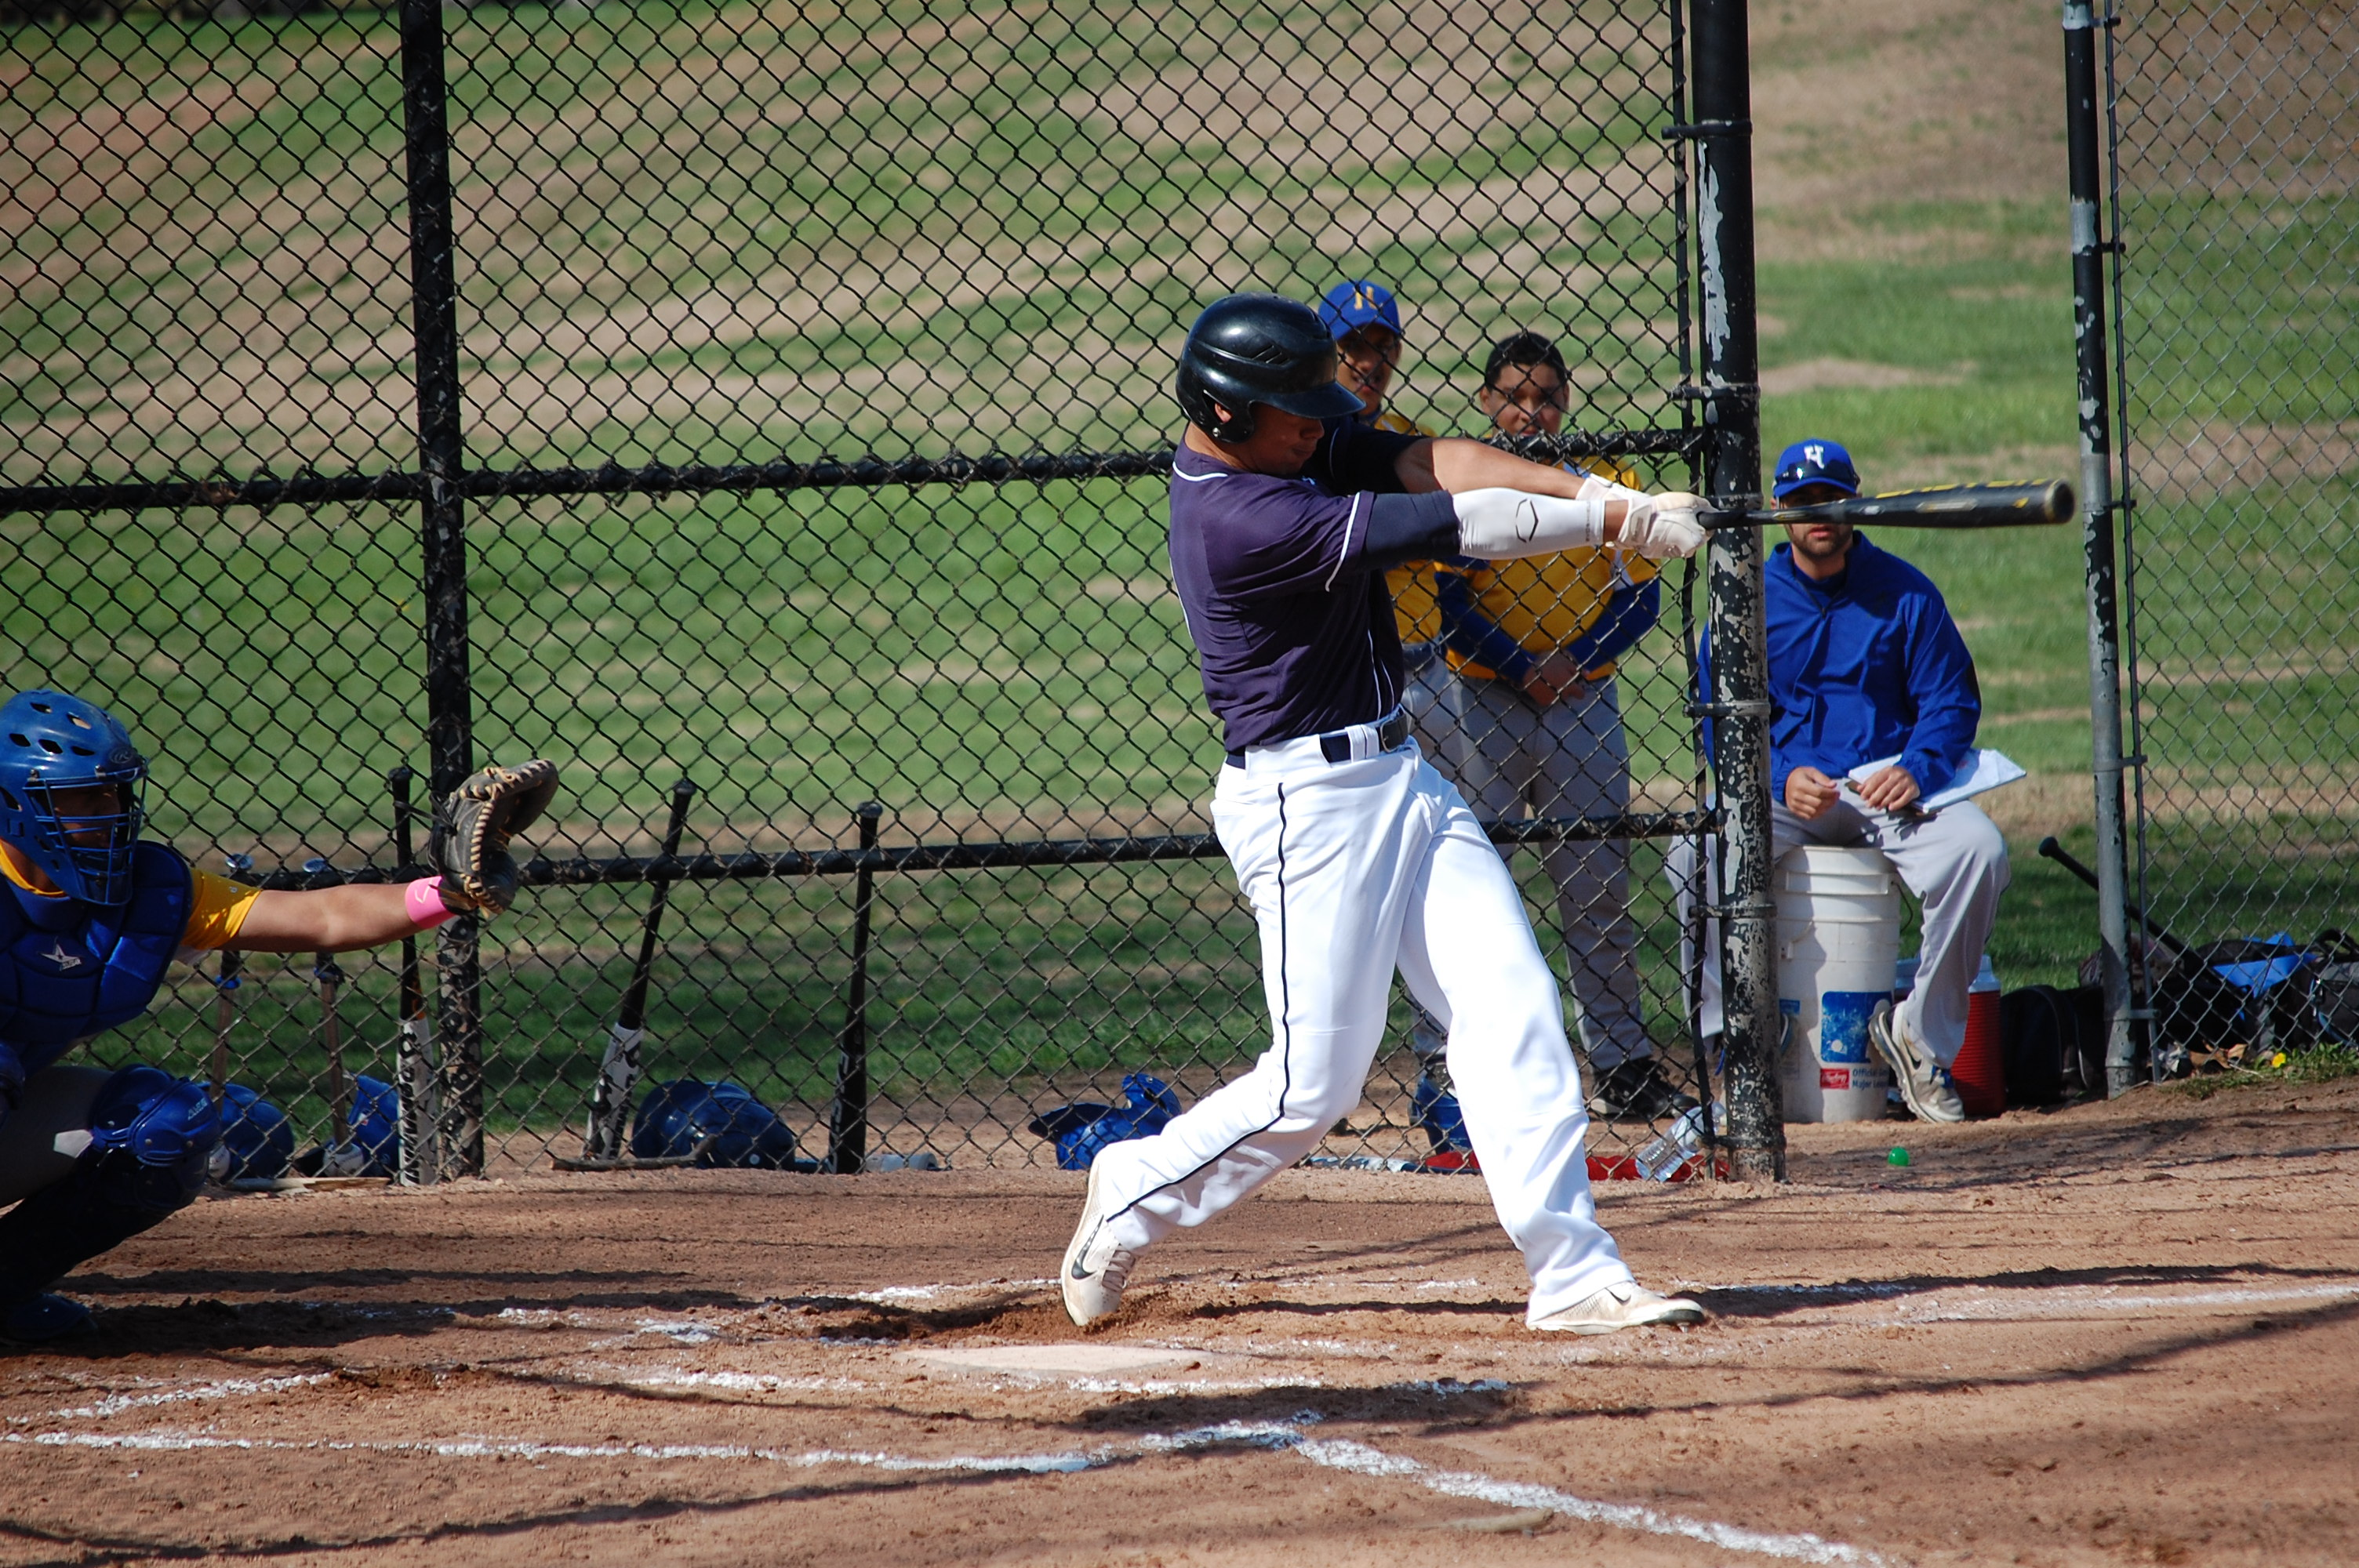 Topher Brown blasts a 2 run homer in the 2nd inning Monday!